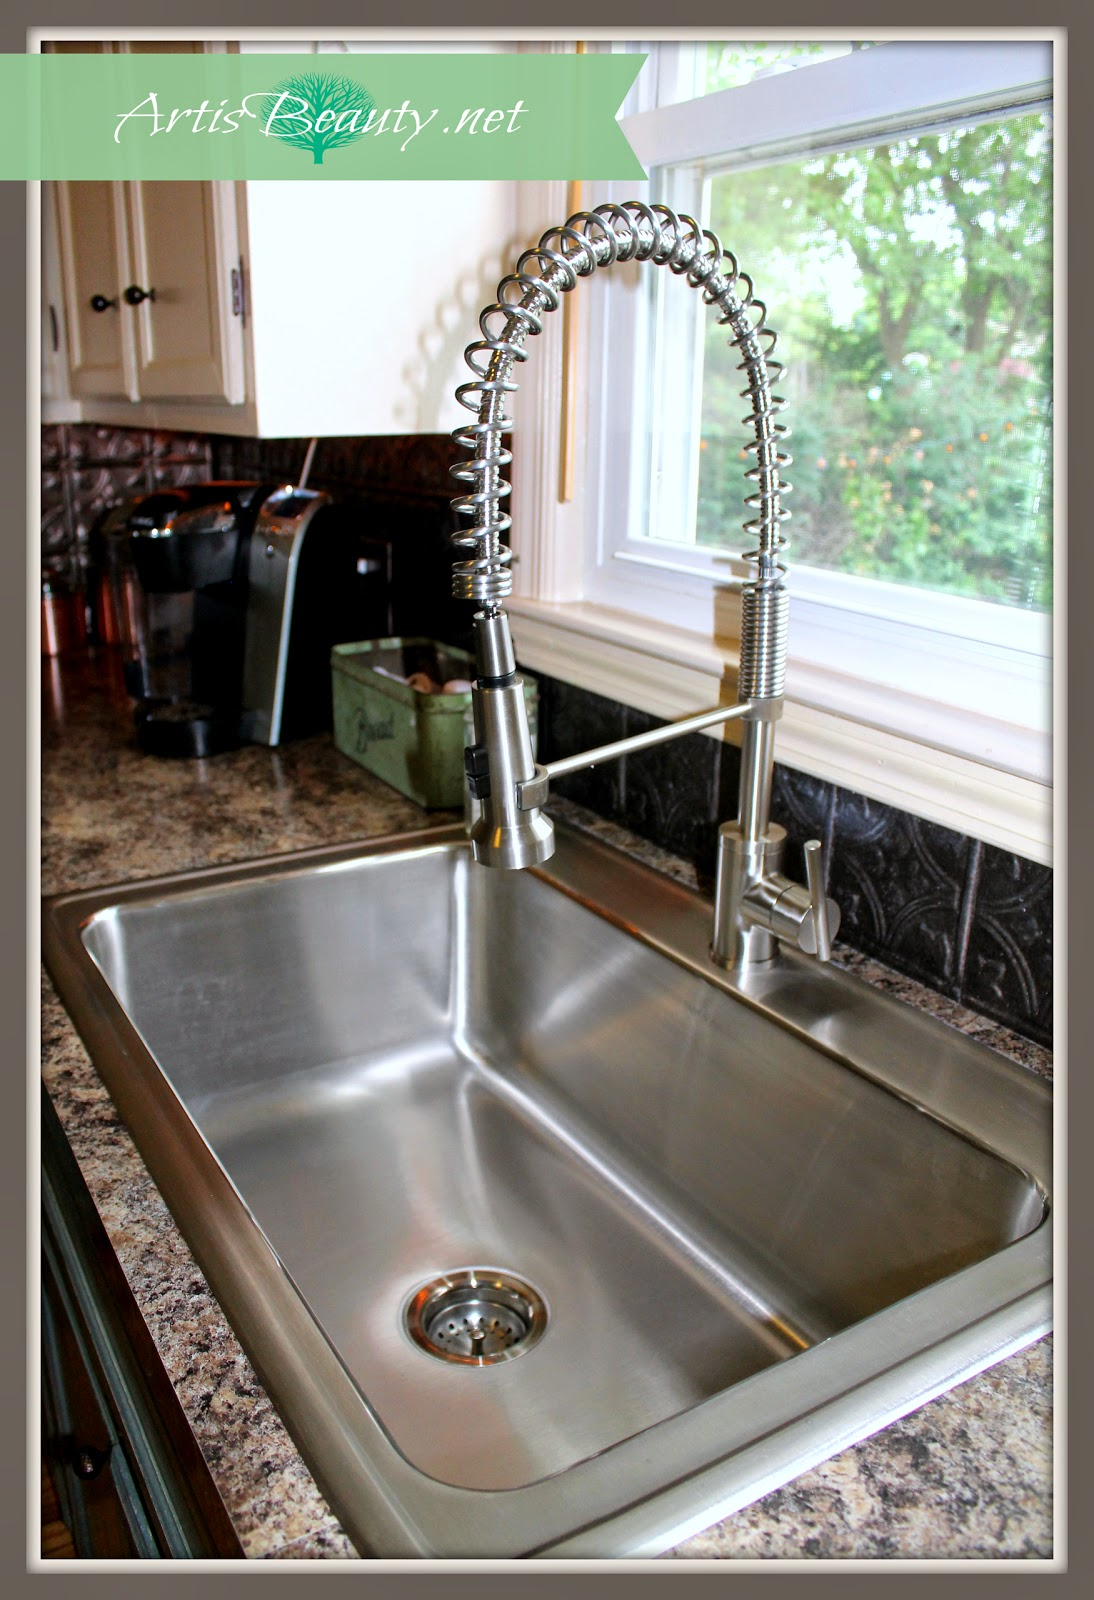 elkay kitchen sink and parma faucet danze kitchen faucets Elkay Kitchen Sink and Parma Faucet Remodel Reveal